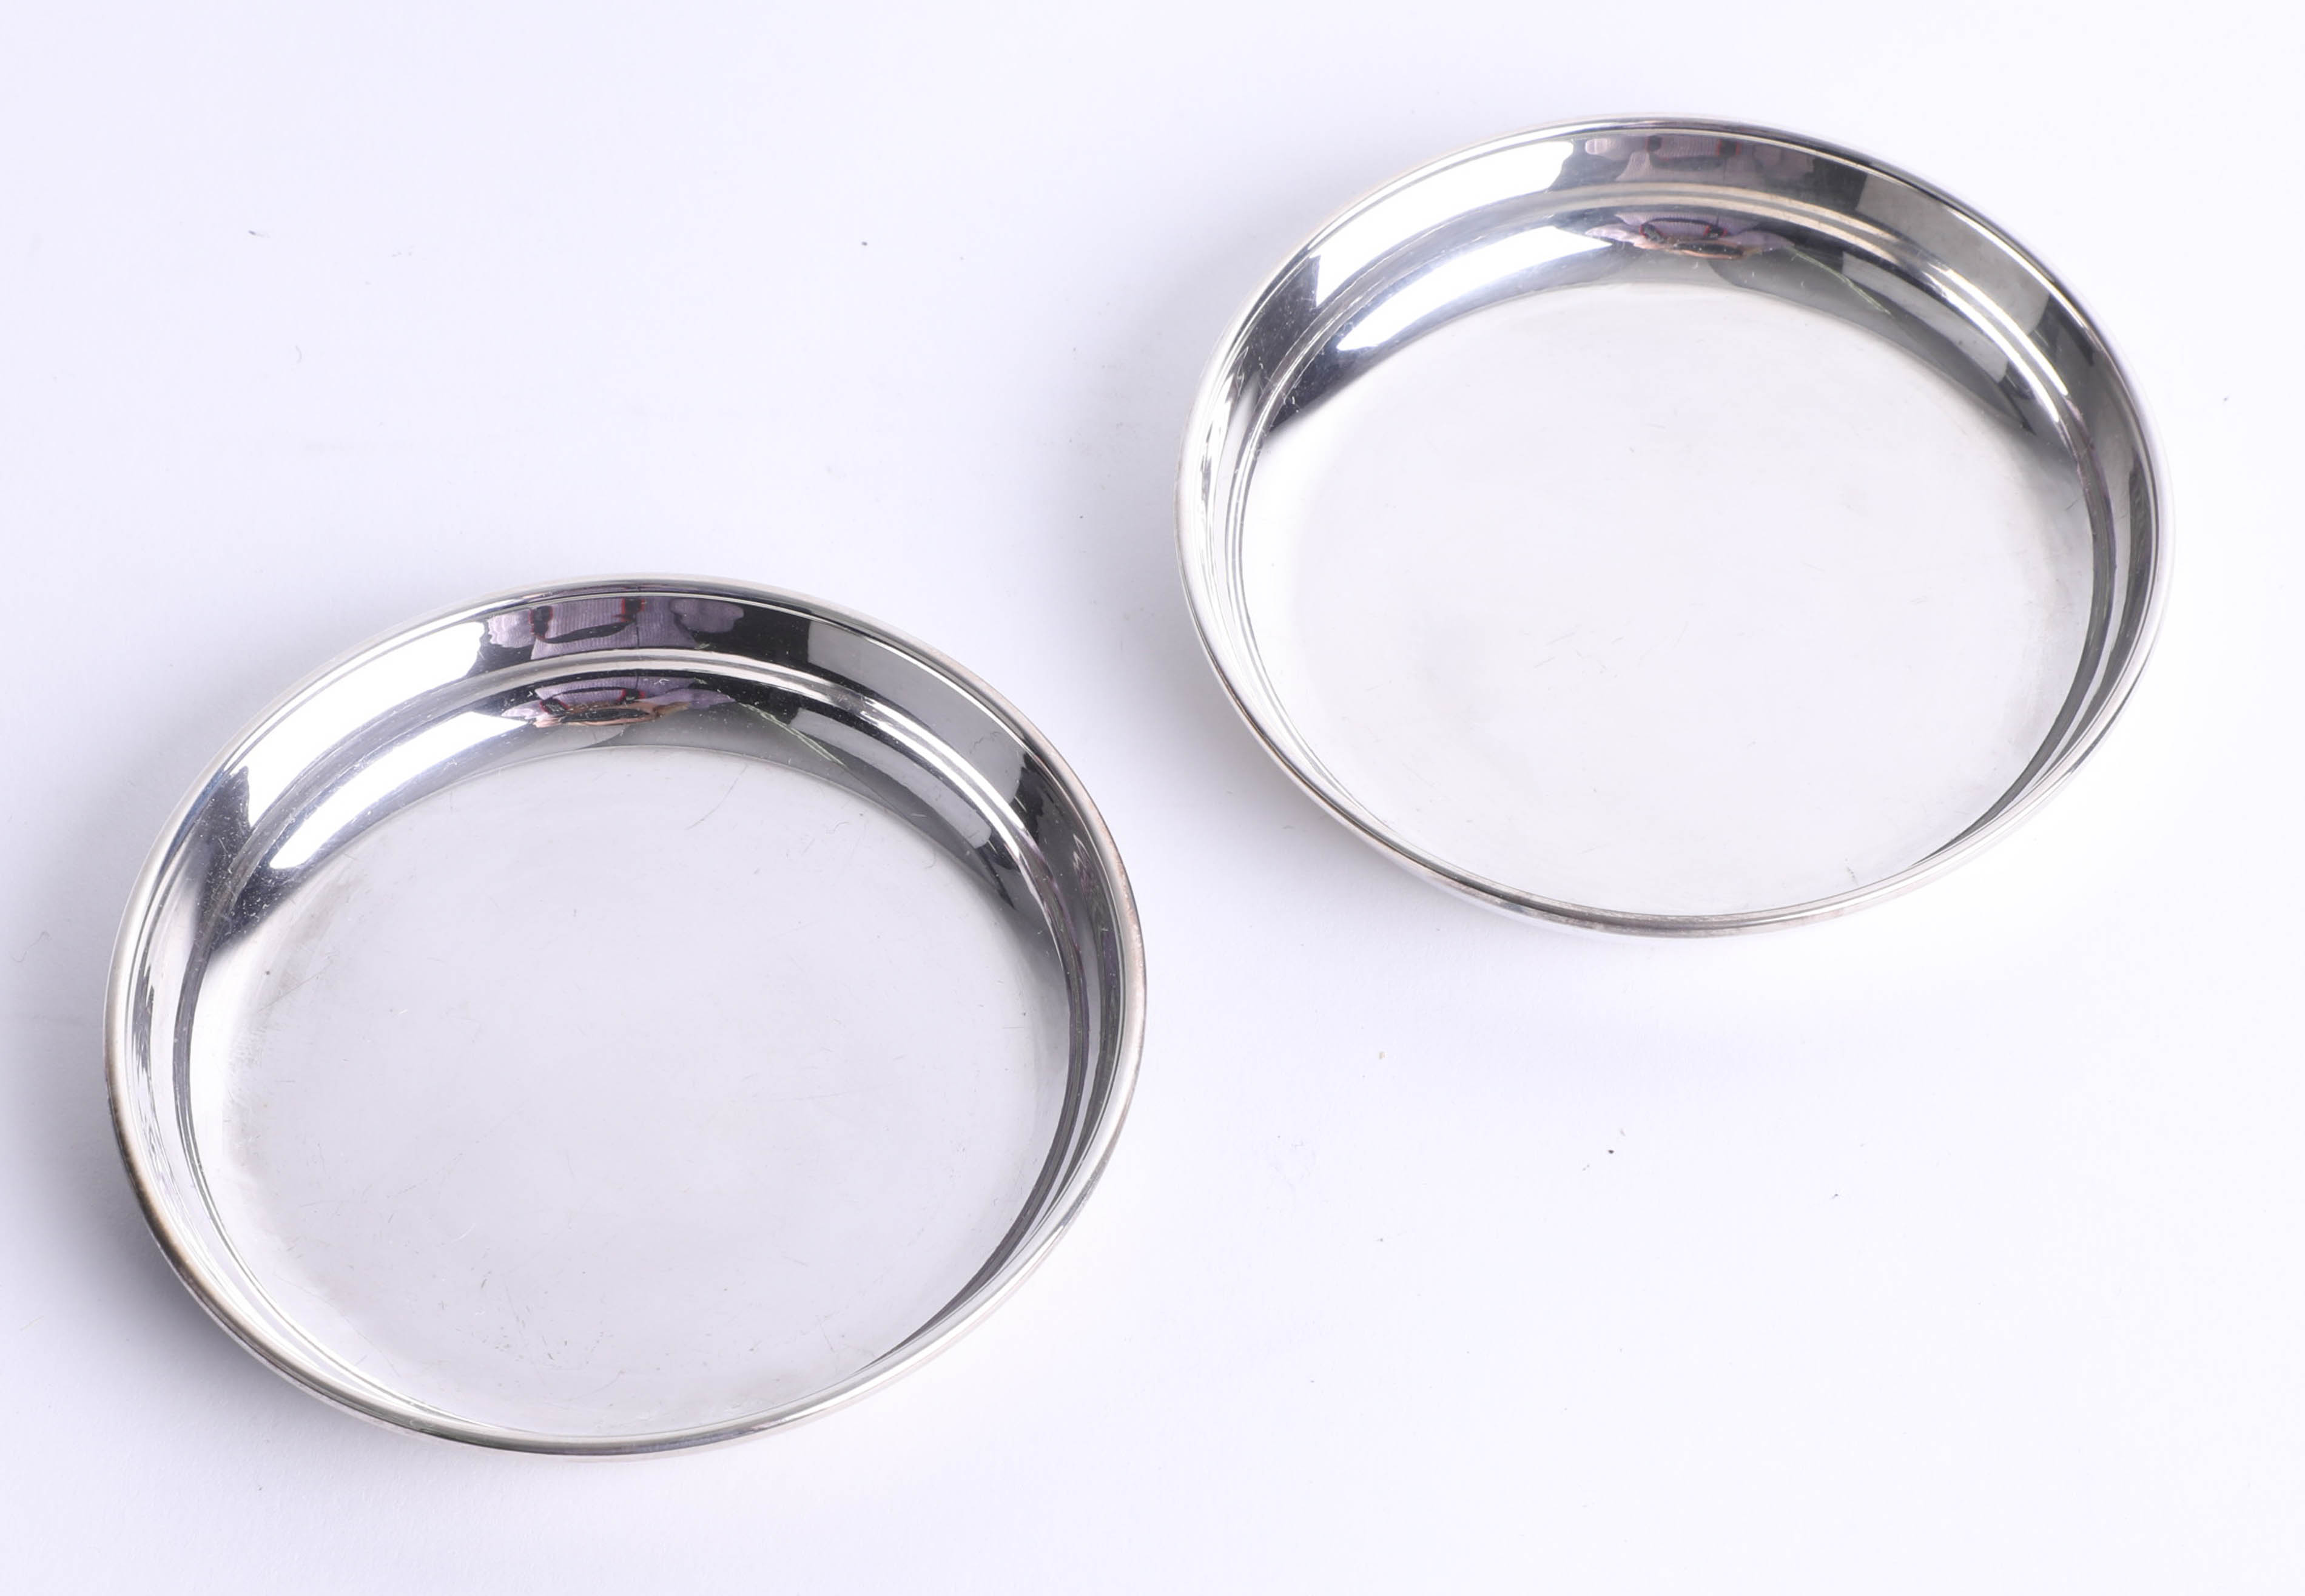 Lot 011 - A silver matched pair of small round dishes, diameter 7.6cm, Birmingham, Maker S.J.R., total